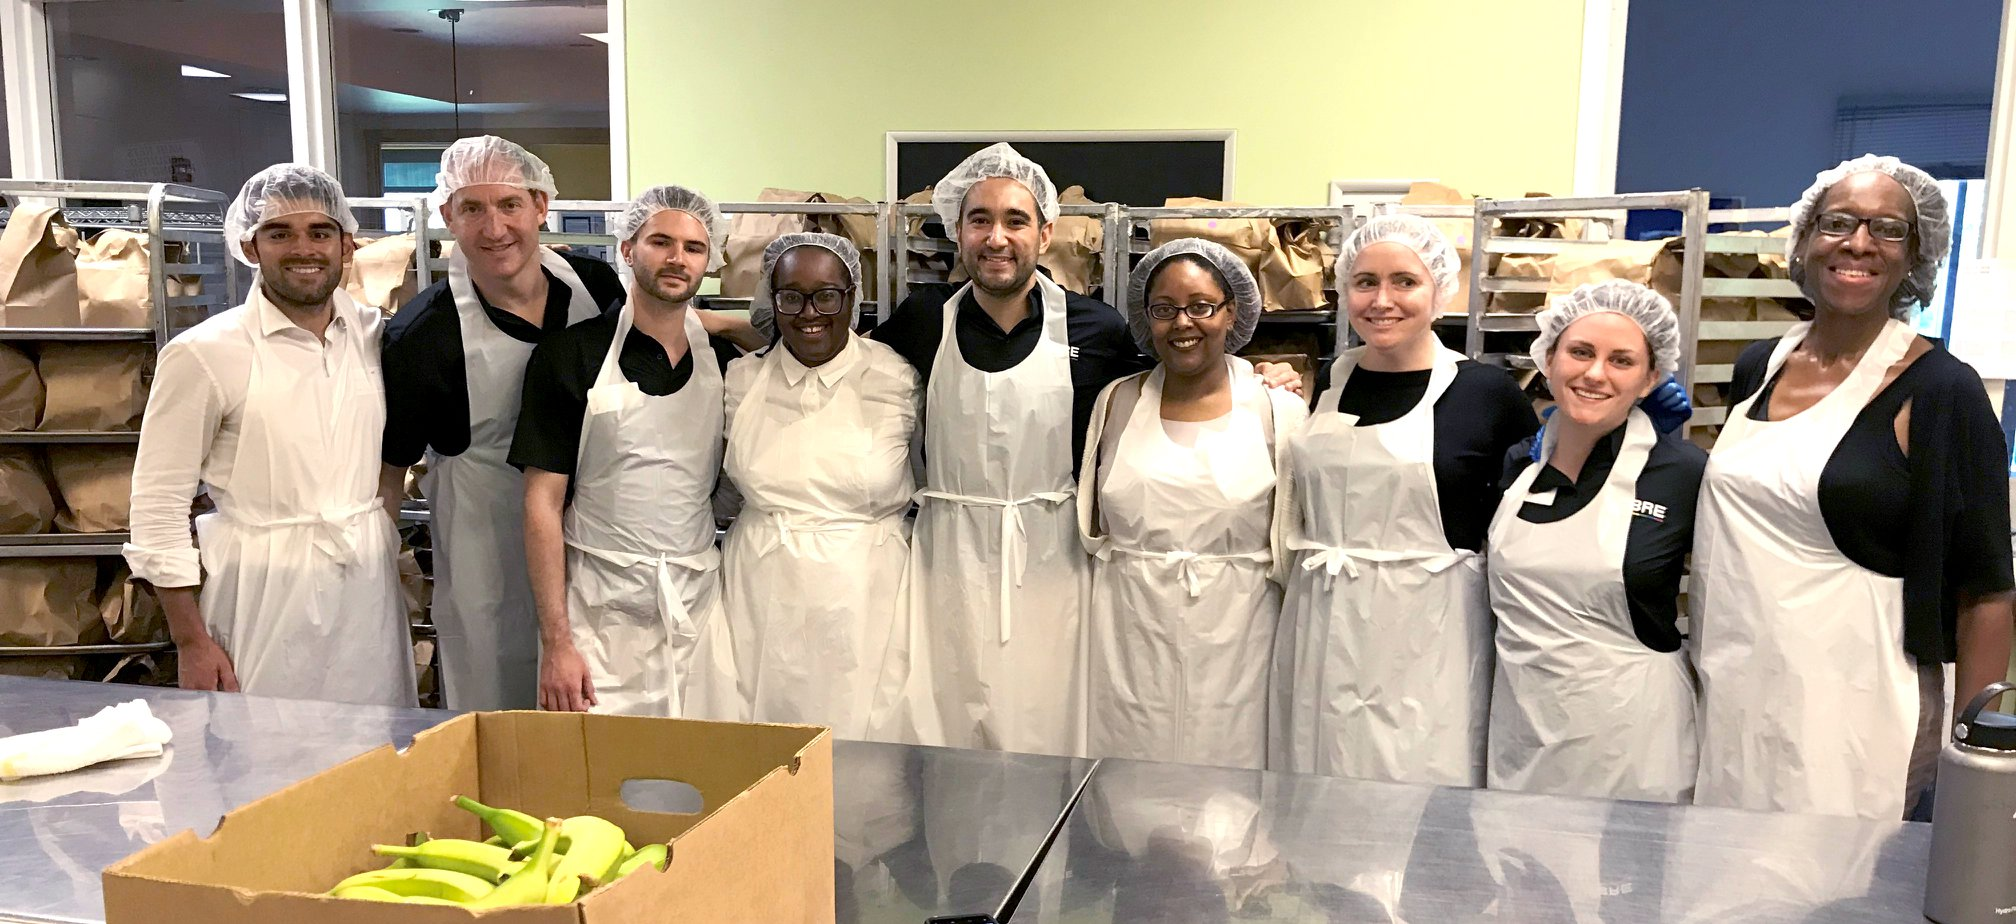 Volunteering with CBRE's LGBTQ & Allies Networking group at  Food & Friends  in Northeast Washington, D.C.